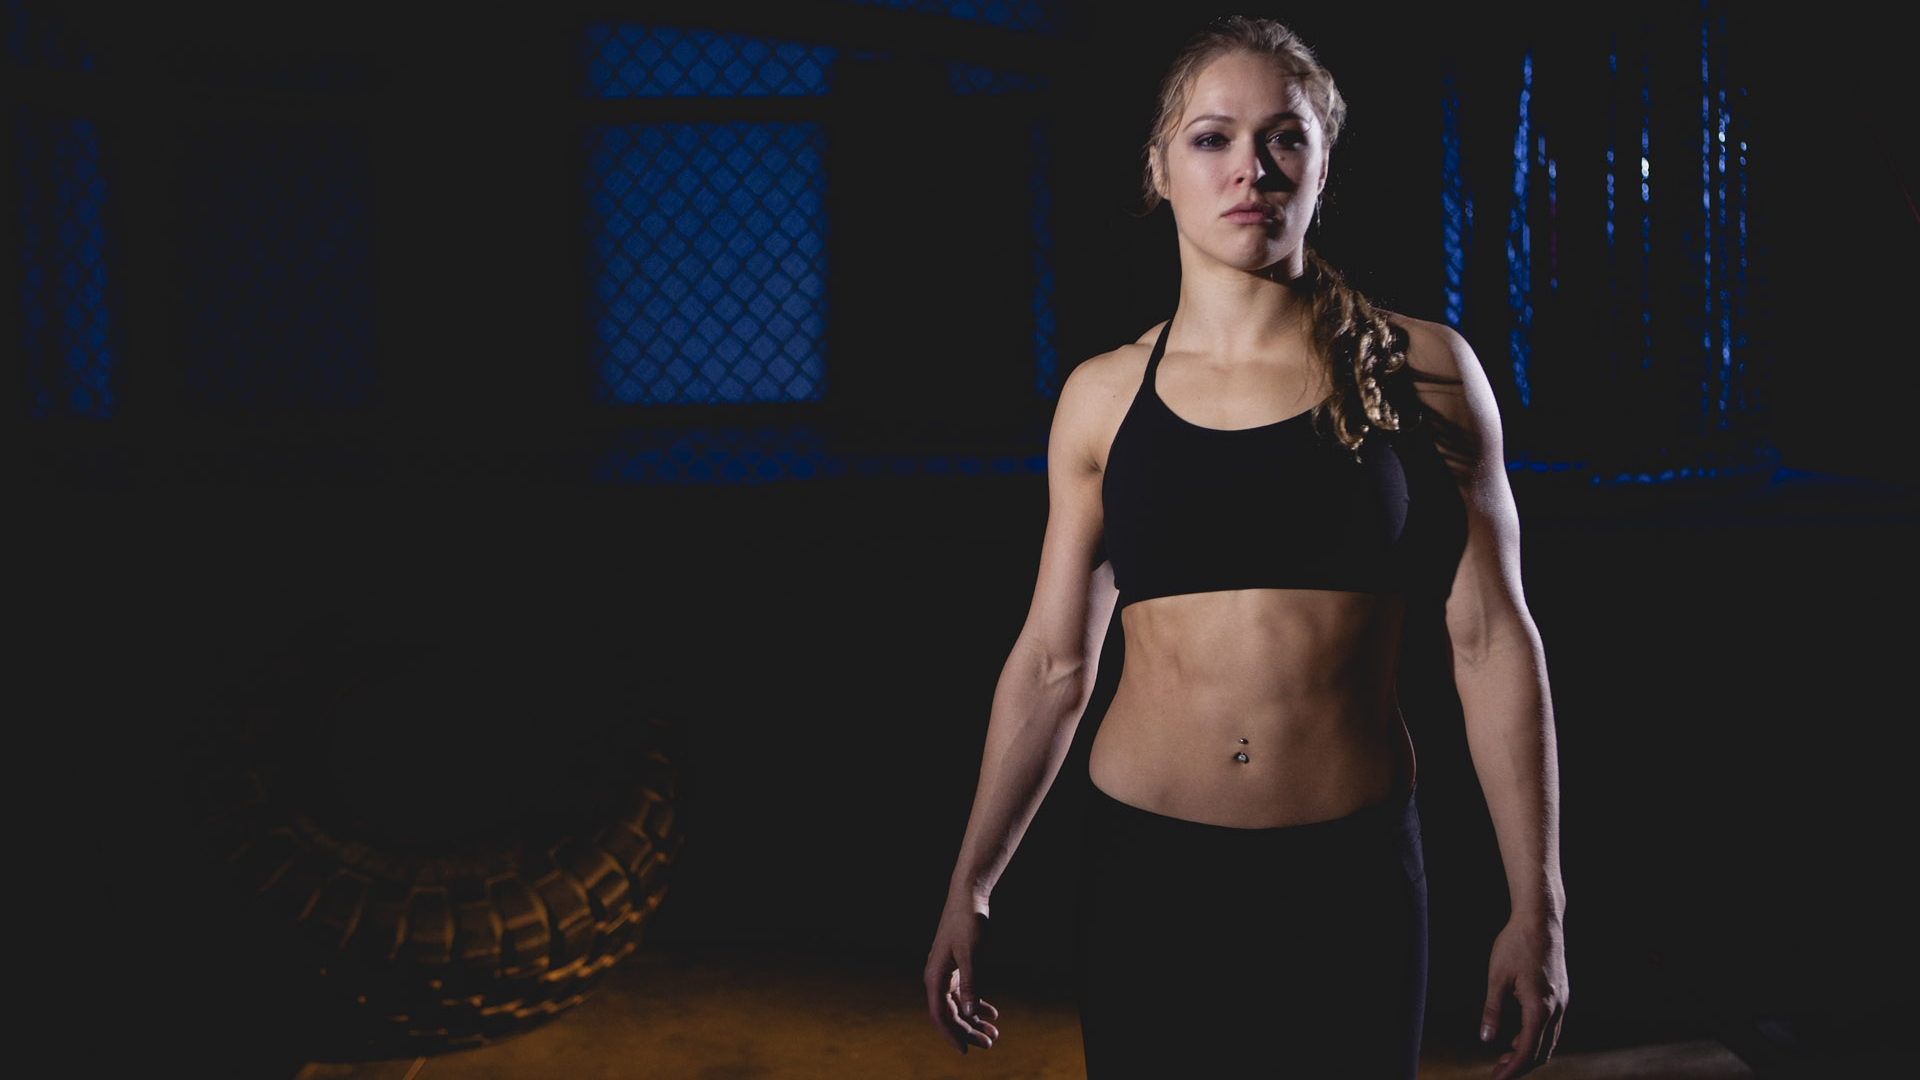 Ronda Rousey HD Wallpaper   Background Image   1920x1080   ID:488511 - Wallpaper Abyss